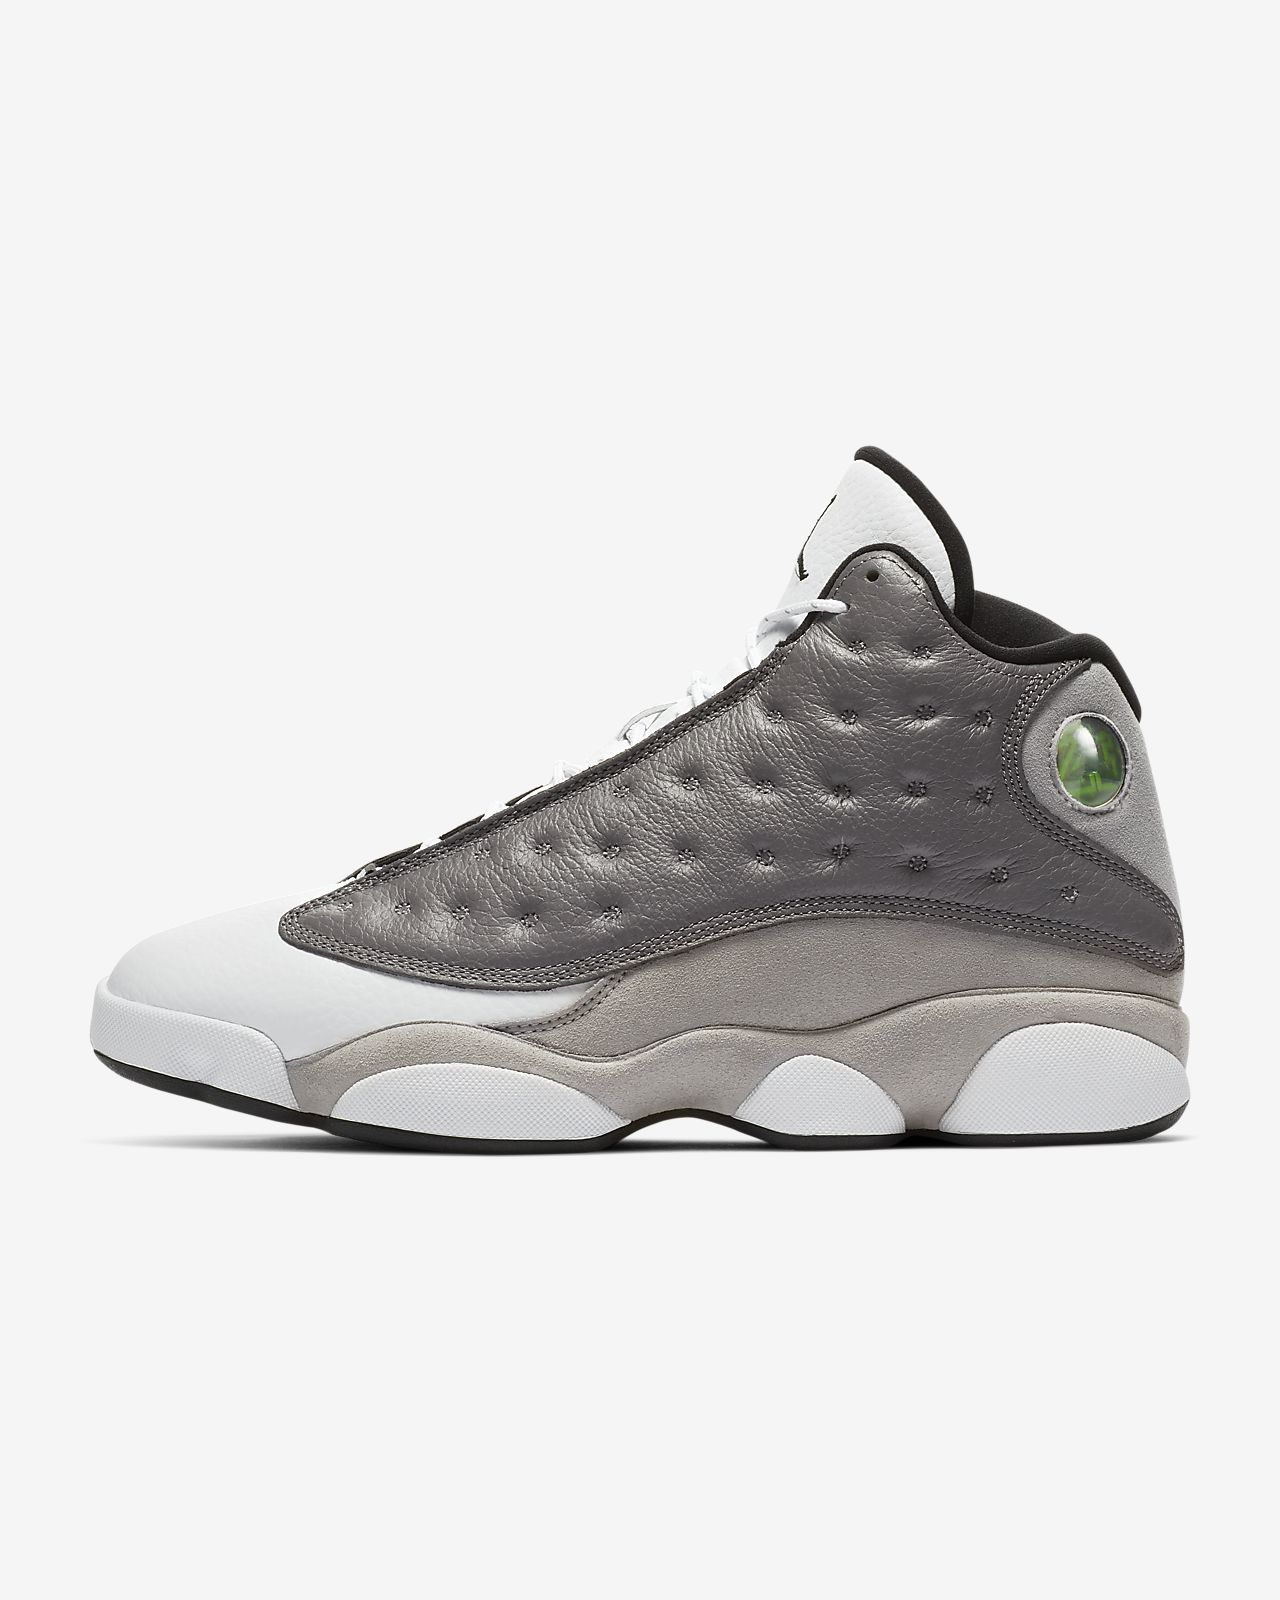 76ce5c8a63 Air Jordan 13 Retro Men's Shoe. Nike.com ID